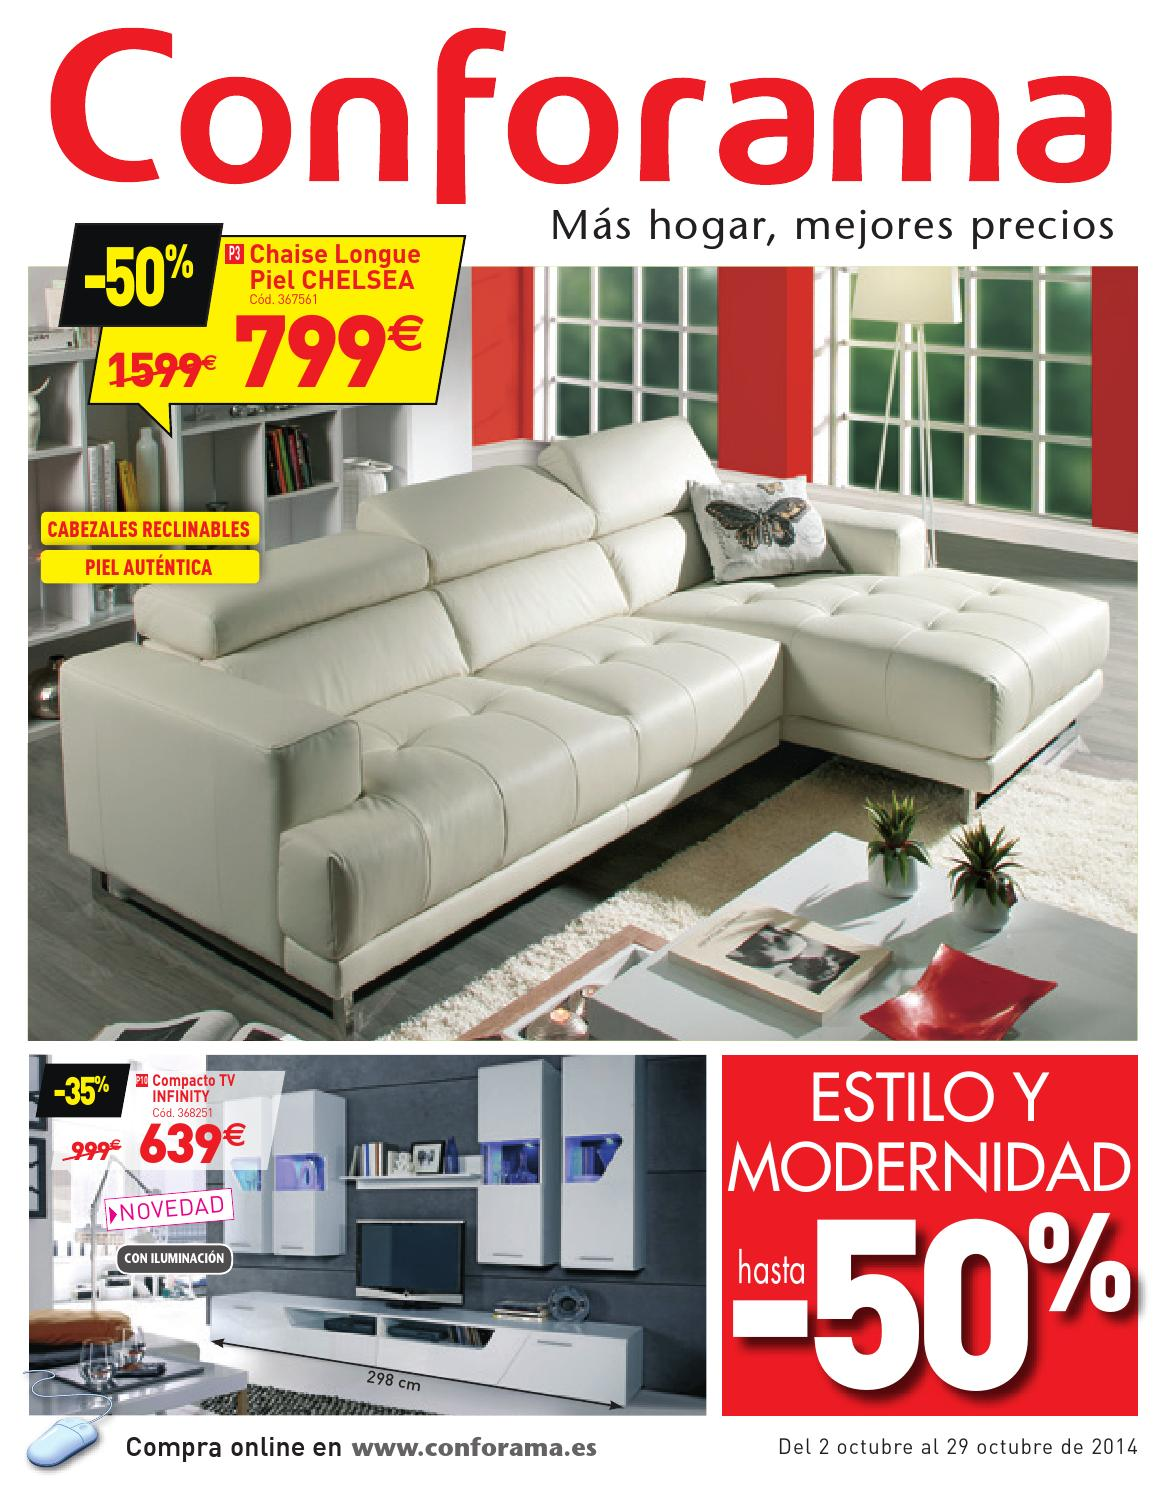 Conforama Bettsofa Argan Conforama Catalogo 2 29octubre2014 By Catalogopromociones Issuu